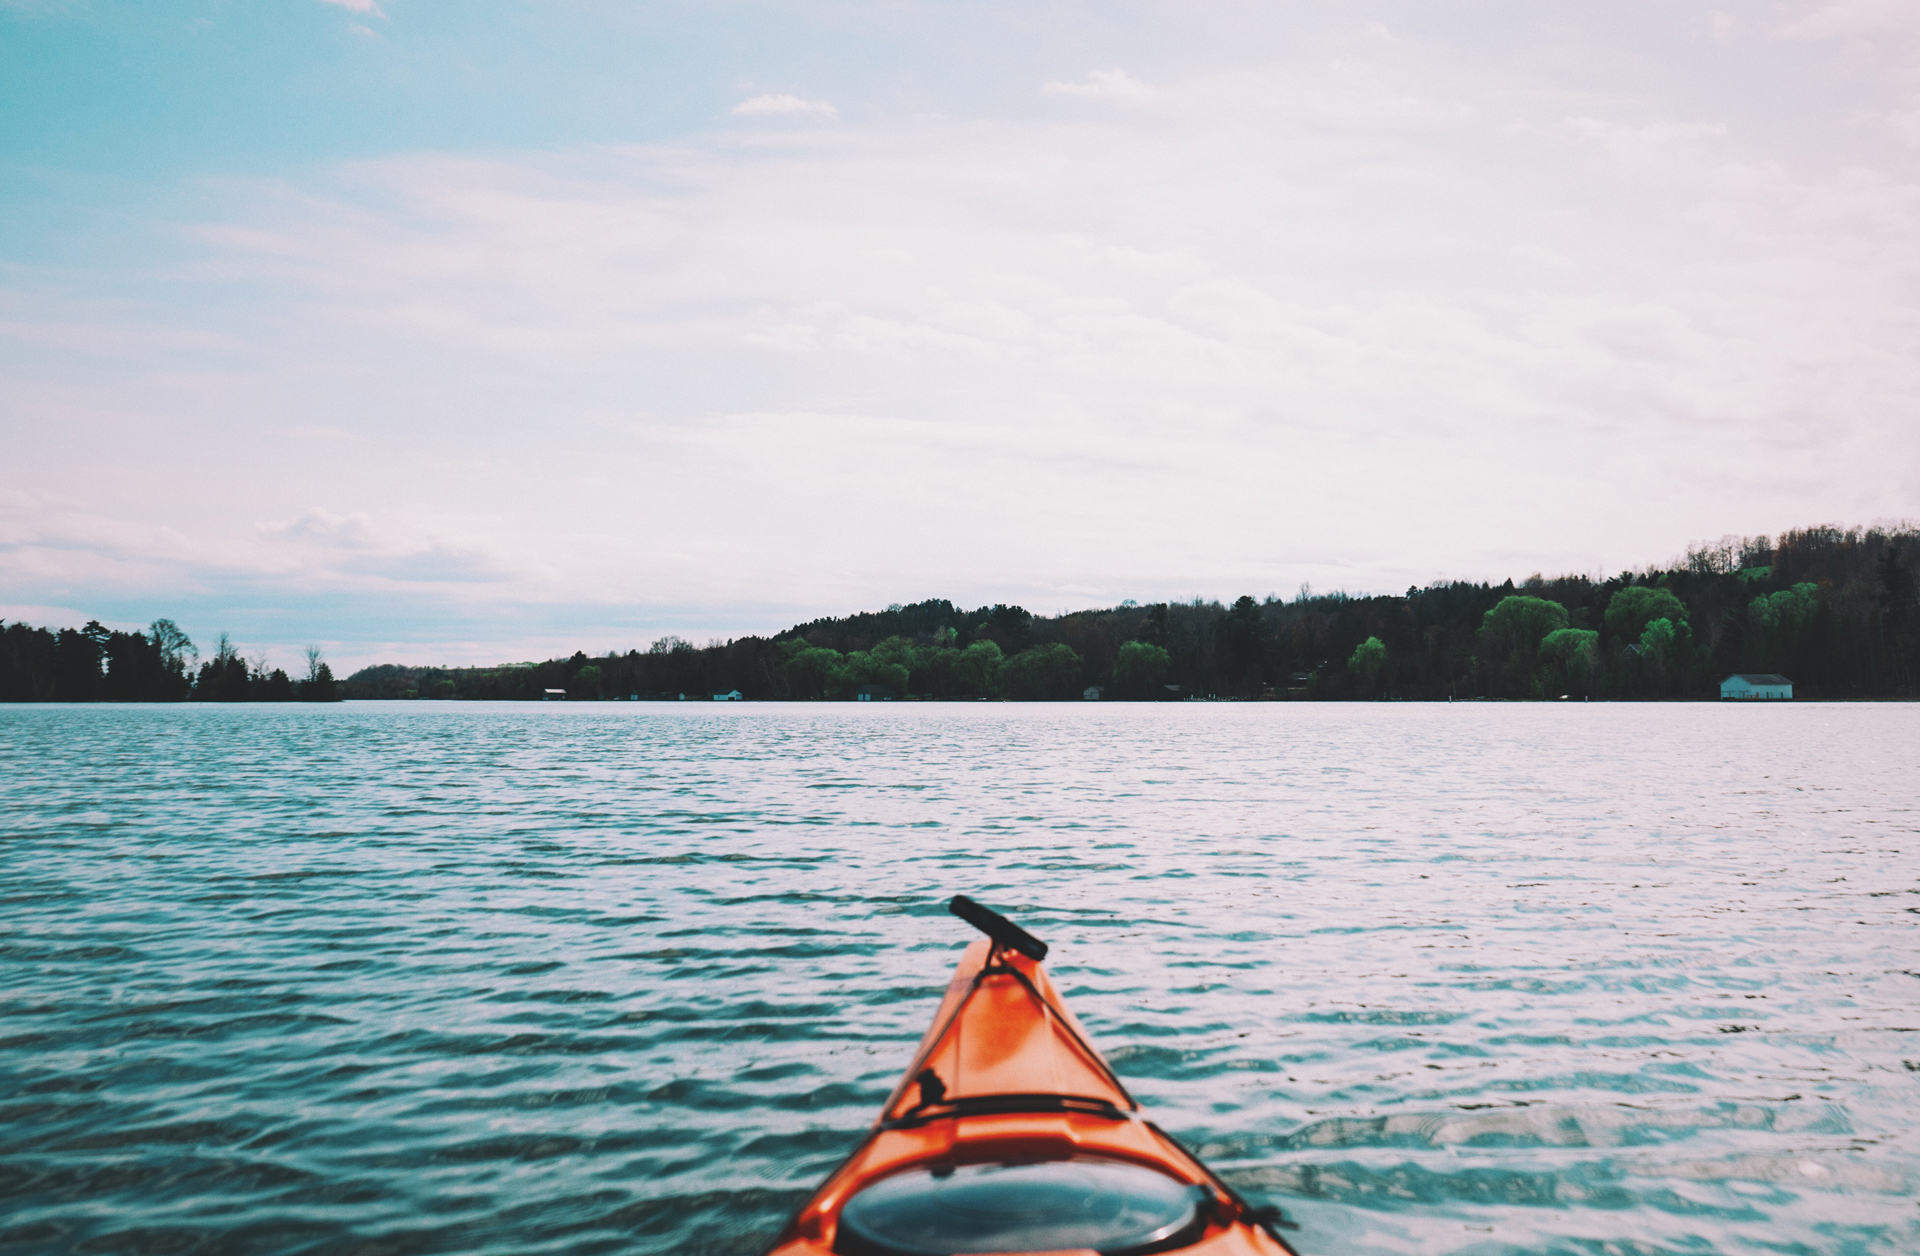 Canva - Person Riding Orange Kayak in Middle of Ocean.jpg